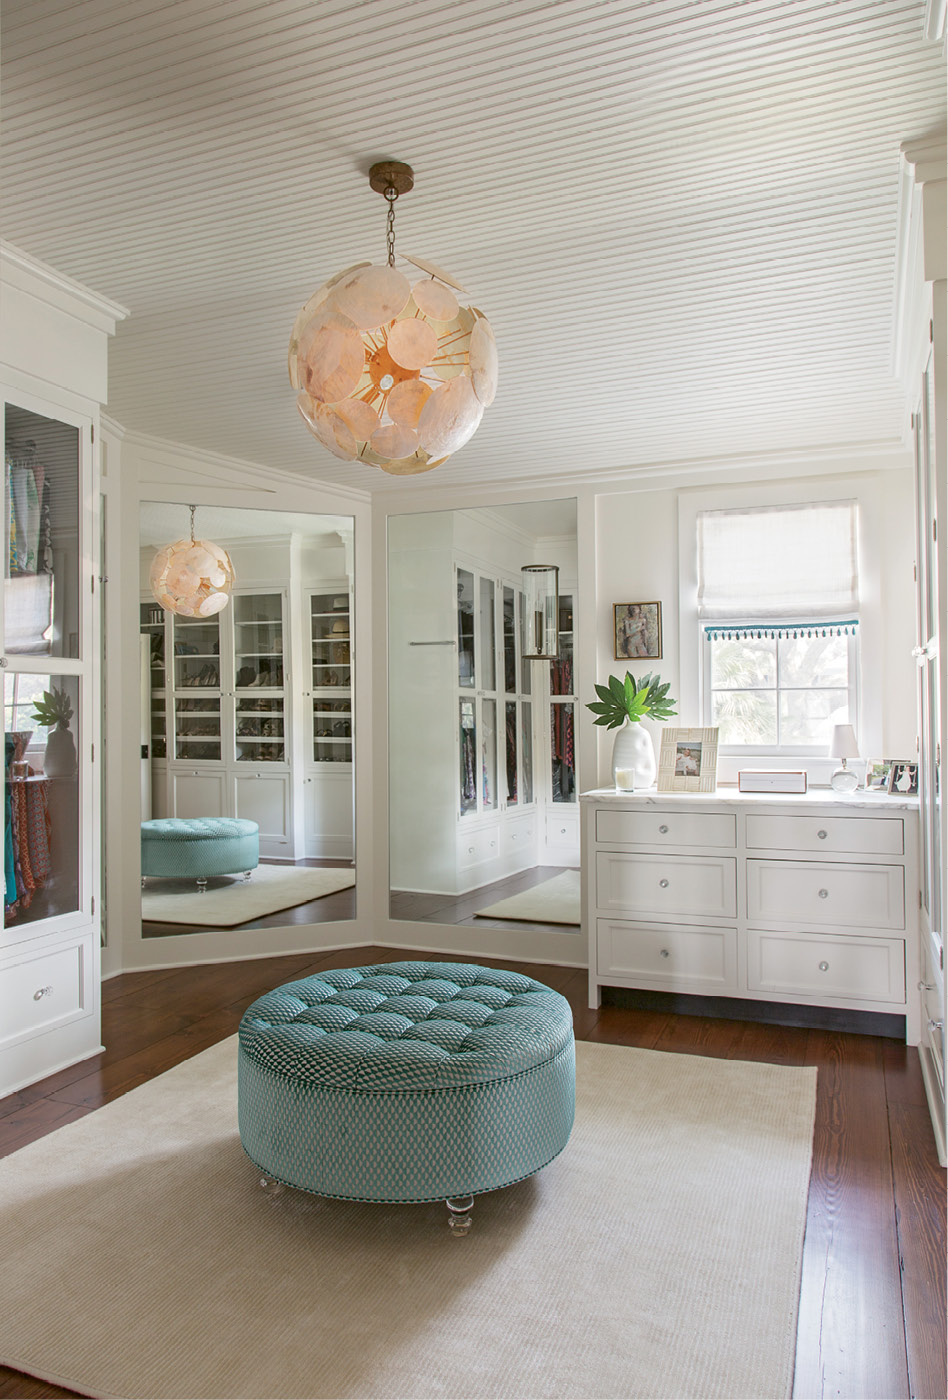 DRESSED FOR SUCCESS: In the dressing room, an Oly light fixture and tufted blue ottoman set an elegant tone.